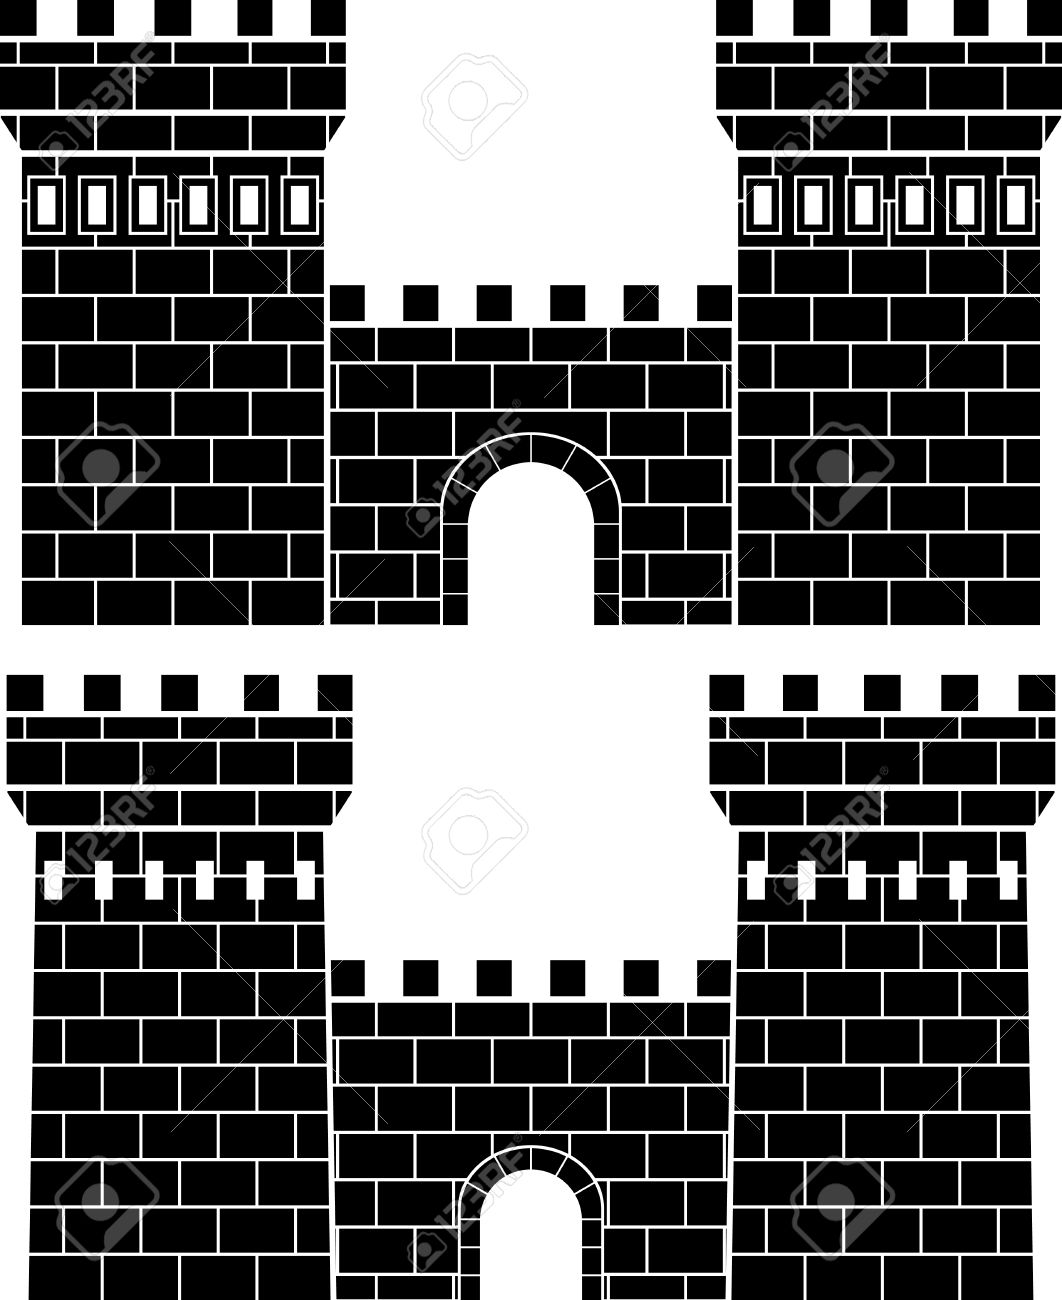 Castle wall clipart black and white.